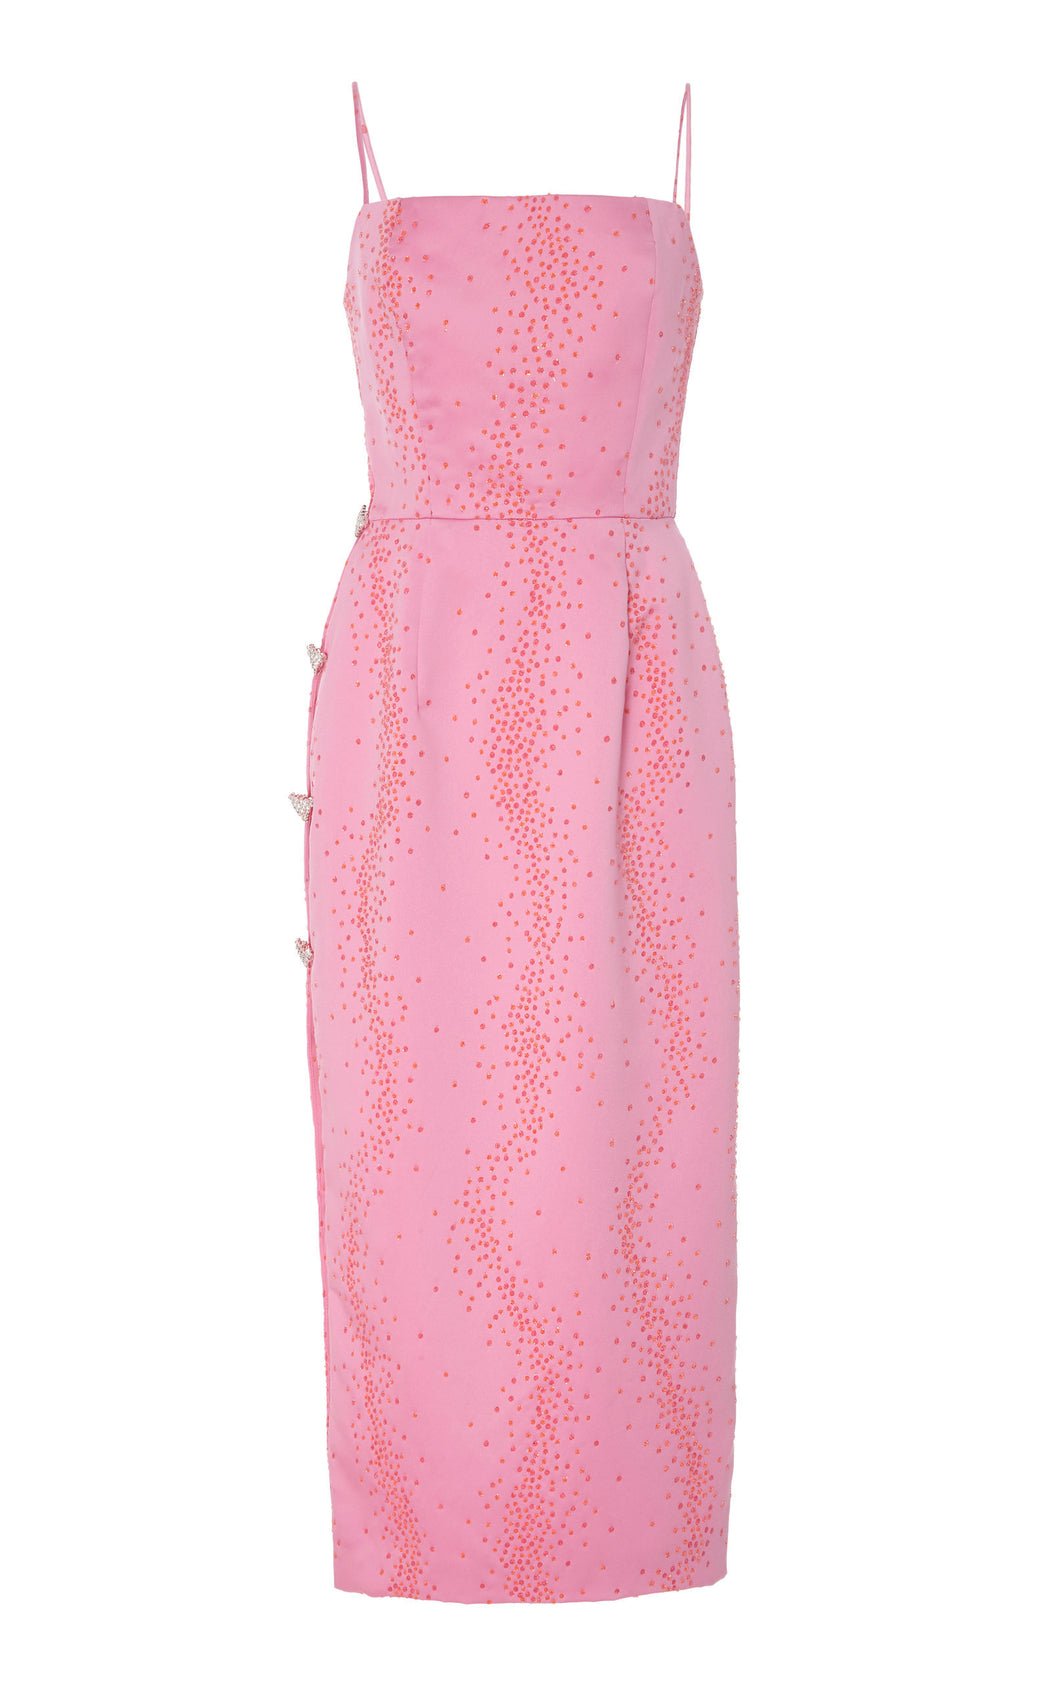 Ruhi Pink Embellished Dress